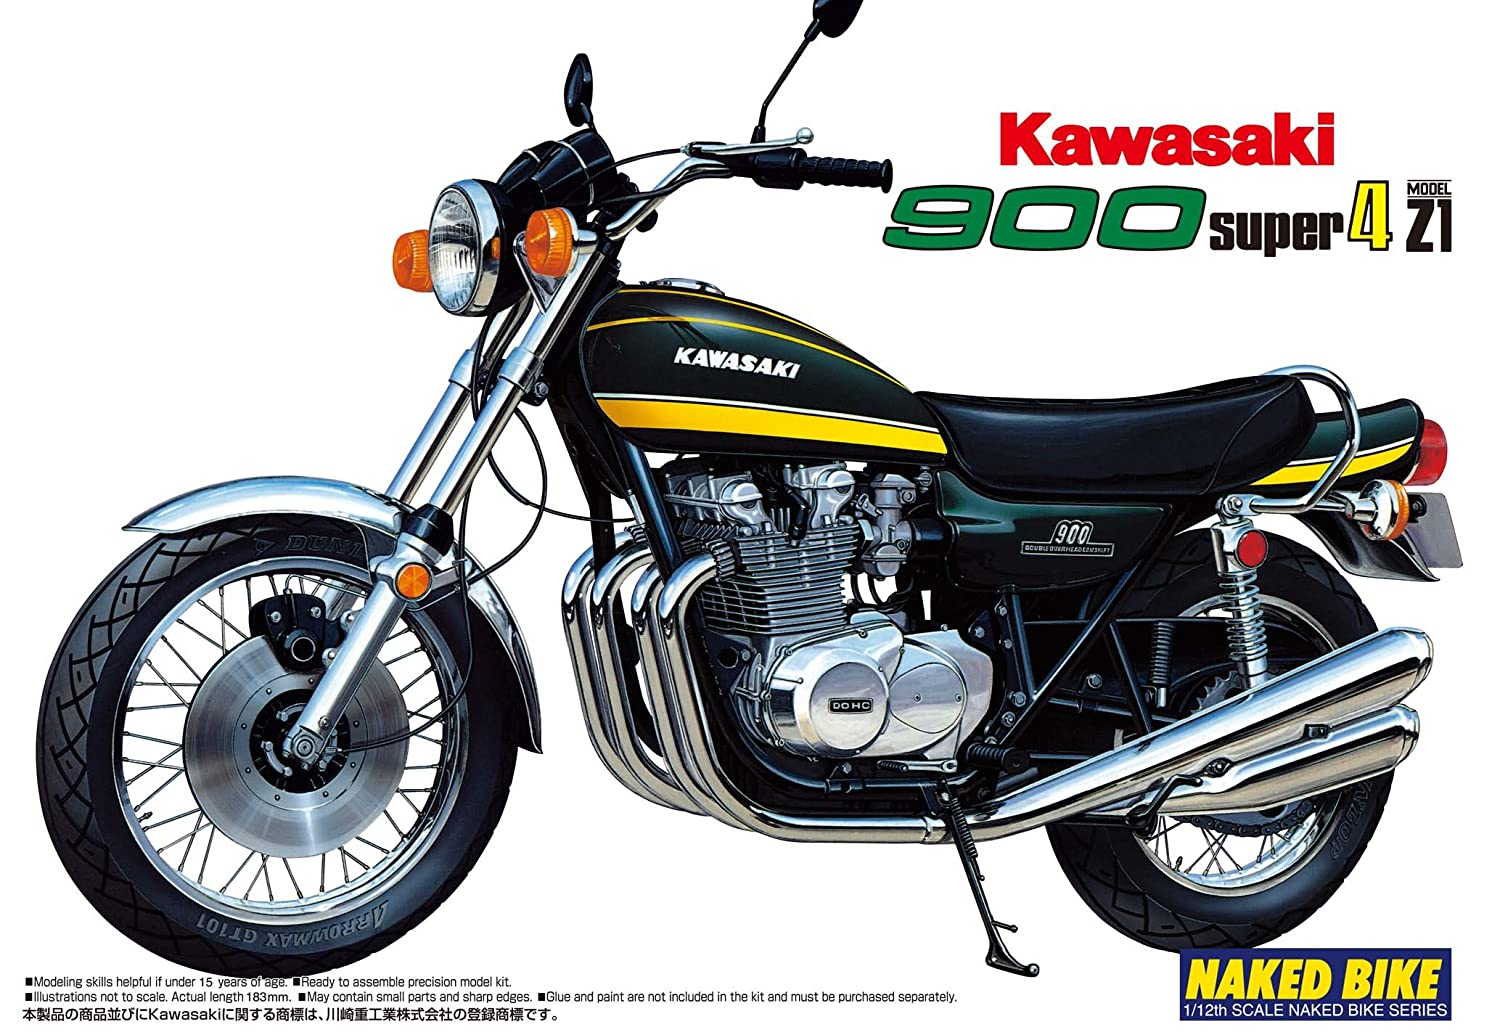 AOSHIMA 1/12 Motorcycle | Model Building Kits | No.12 Kawasaki 900